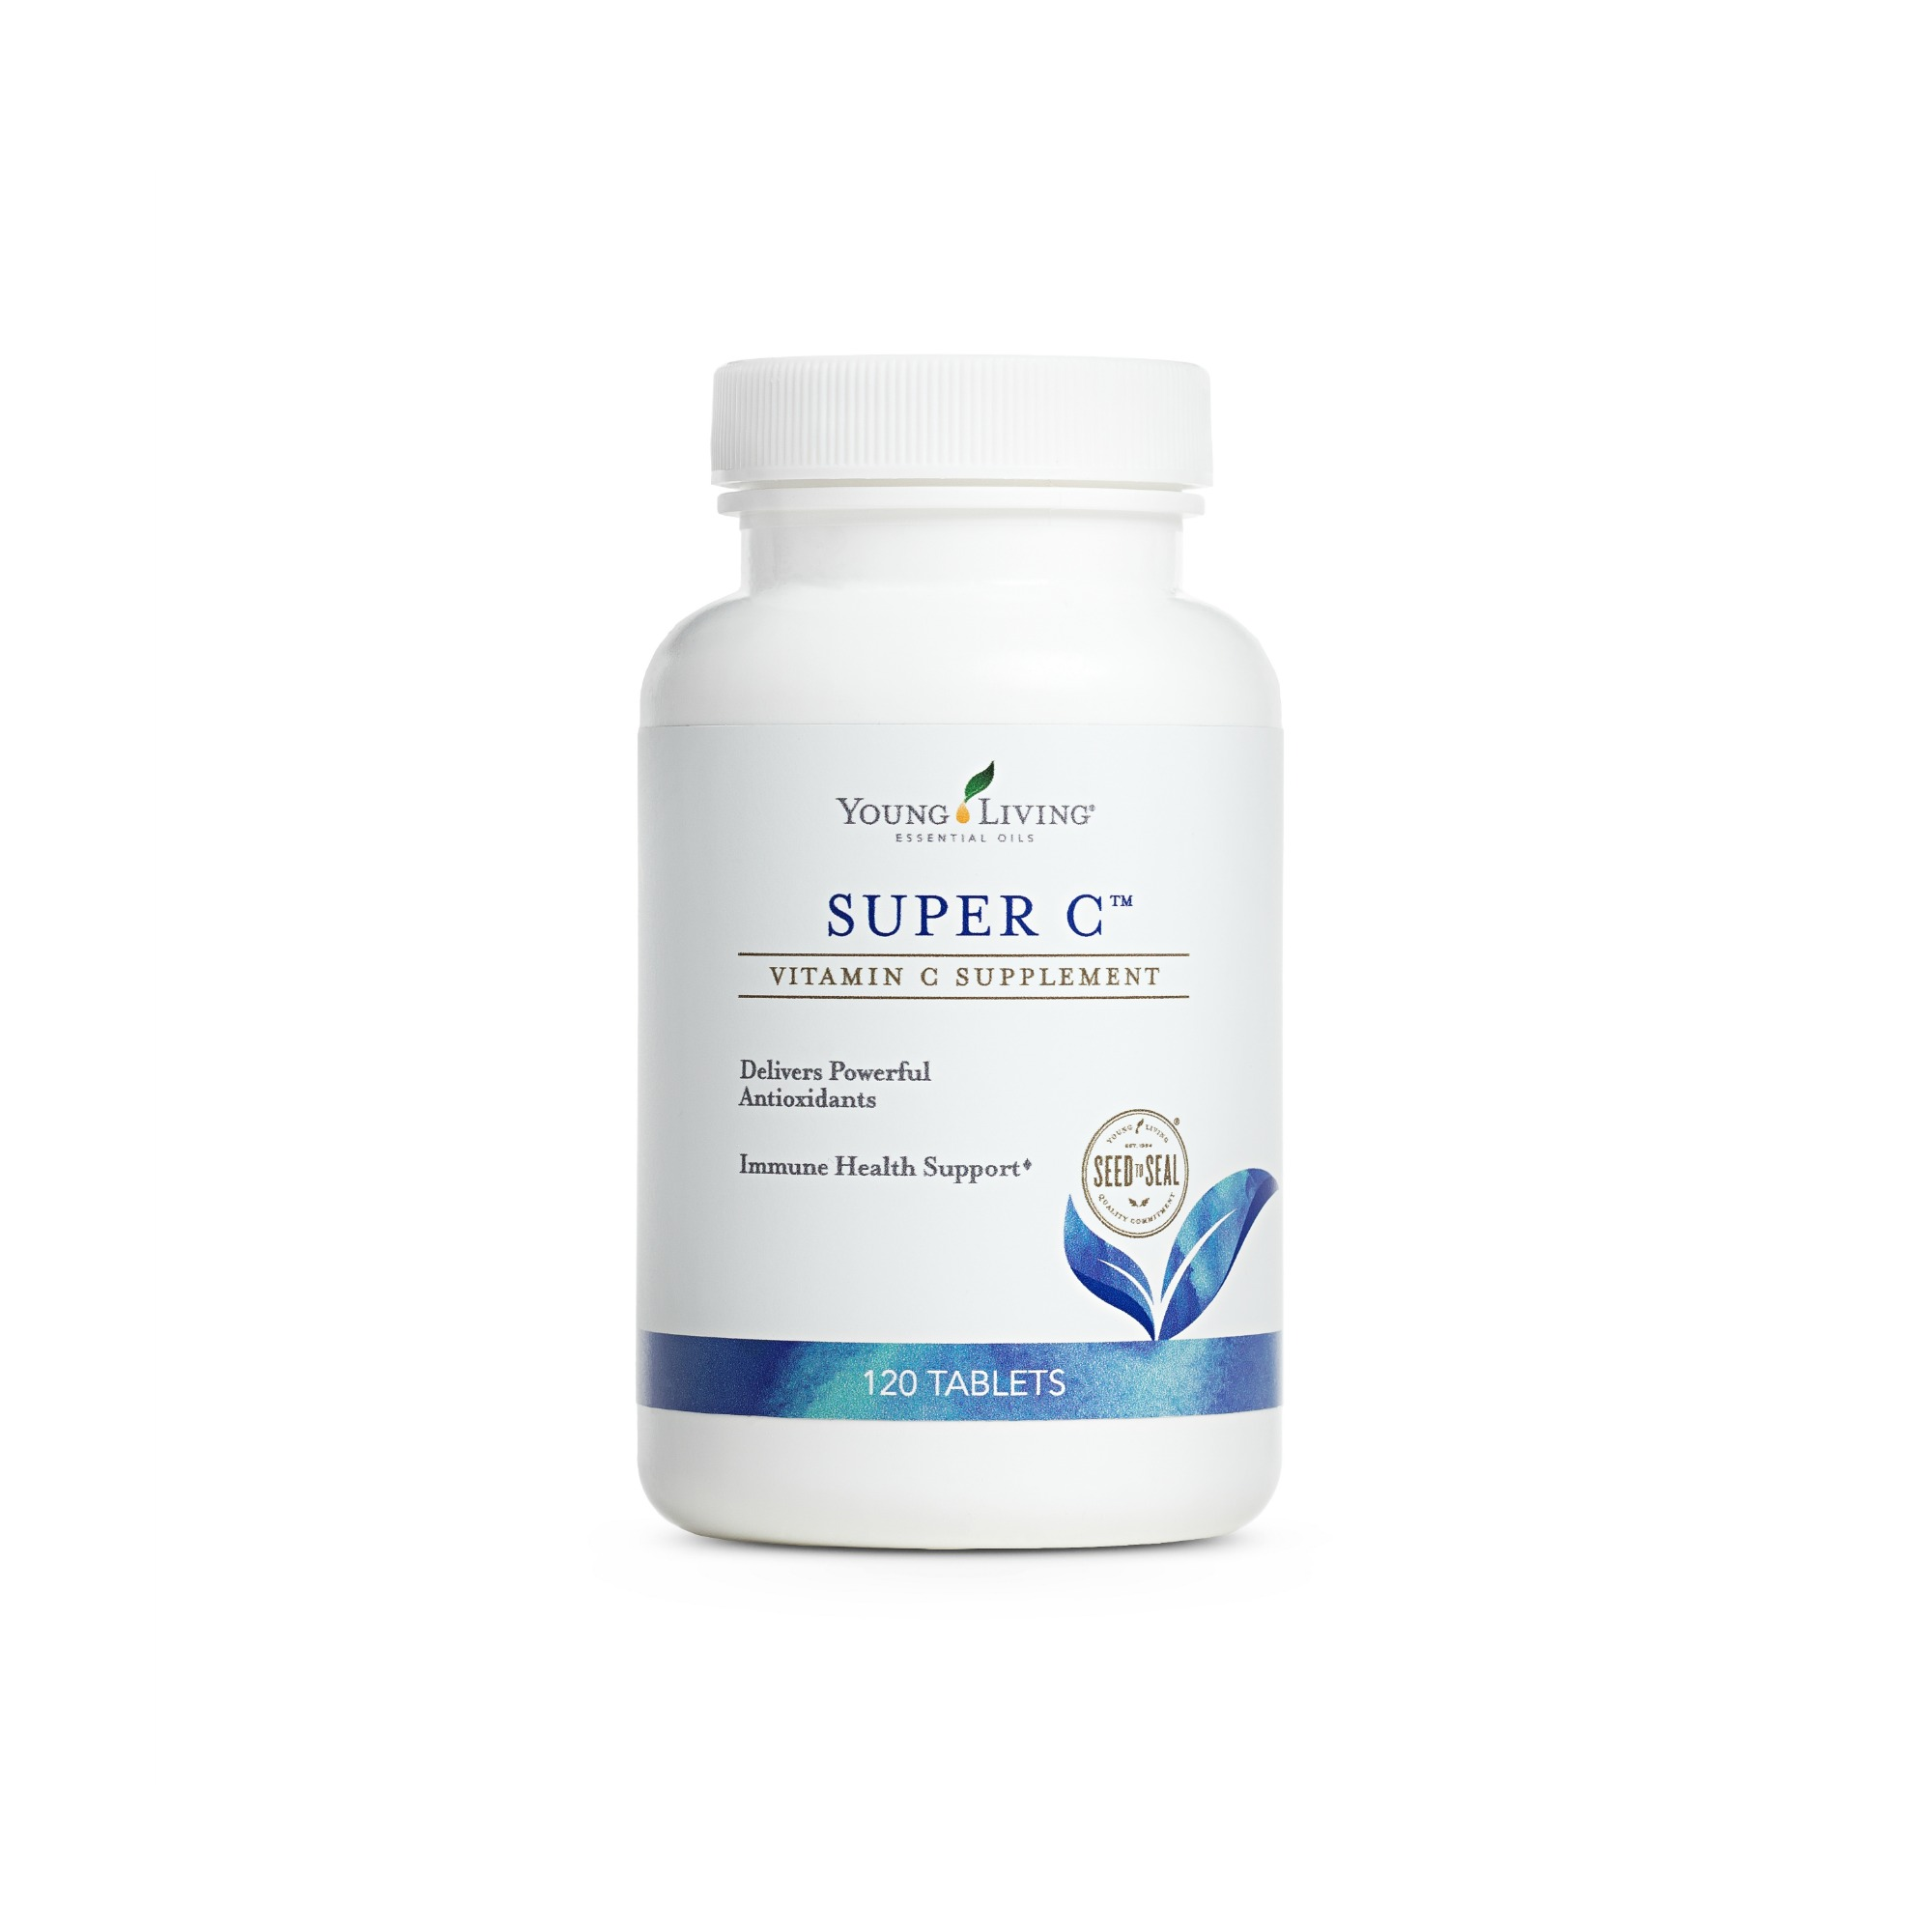 SUPER C    Vitamin C is one of the most important vitamins required by our bodies, and is encouraged to take daily. Studies have shown that vitamin C is great for improving hair growth and for maintaining a healthy scalp. The ingredients in Super C play a role in normal immune and circulatory functions, help to strengthen connective tissues, and promote overall health, vitality, and longevity. Super C contains 1440% of the recommended dietary intake of vitamin C per serving, and is also fortified with rutin, citrus bioflavonoids, and minerals to balance electrolytes and enhance the effectiveness and absorption of vitamin C.   Click here   to learn more about this product.